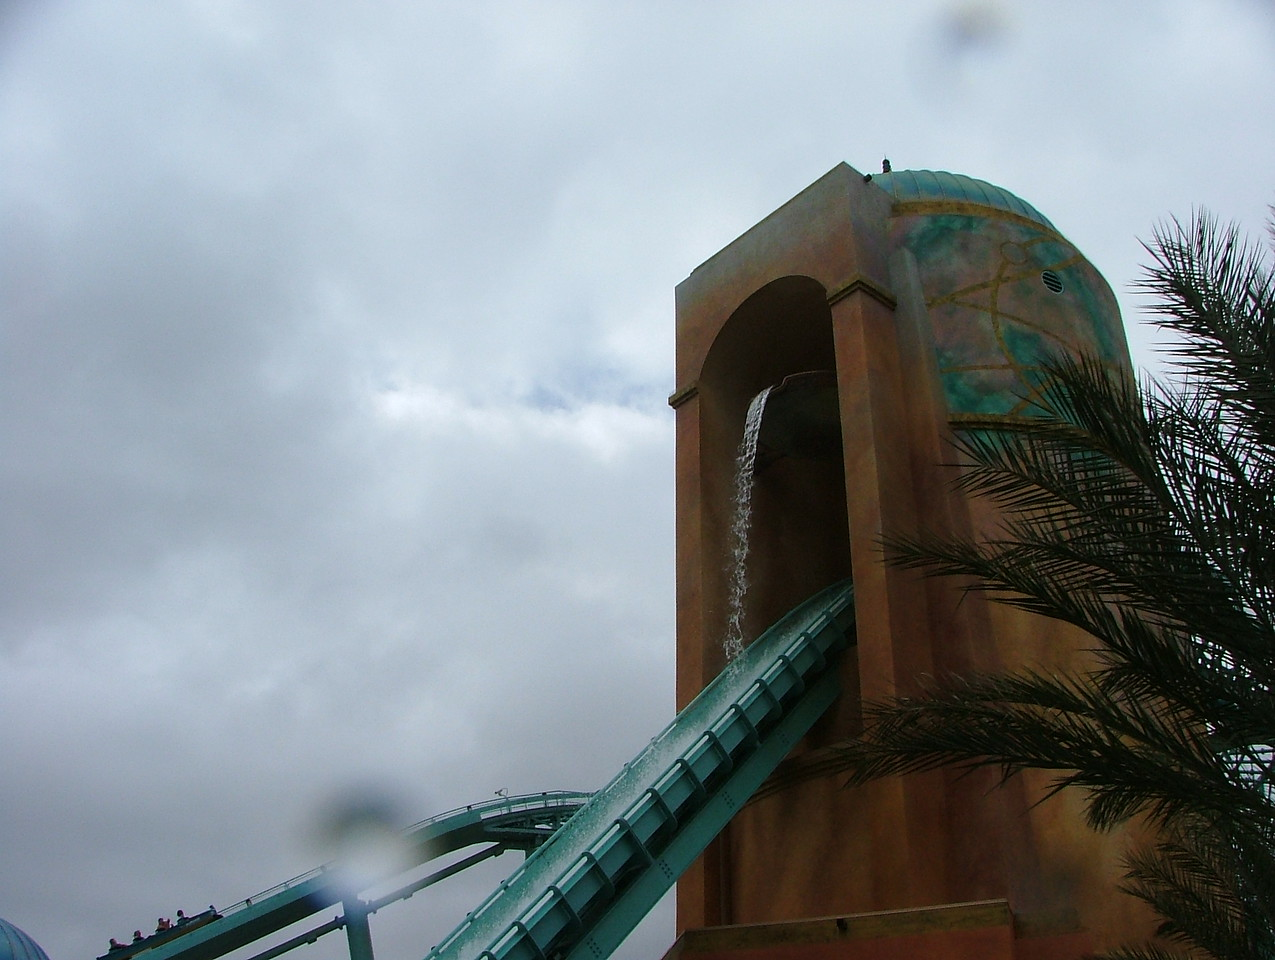 You WILL get wet on this ride!